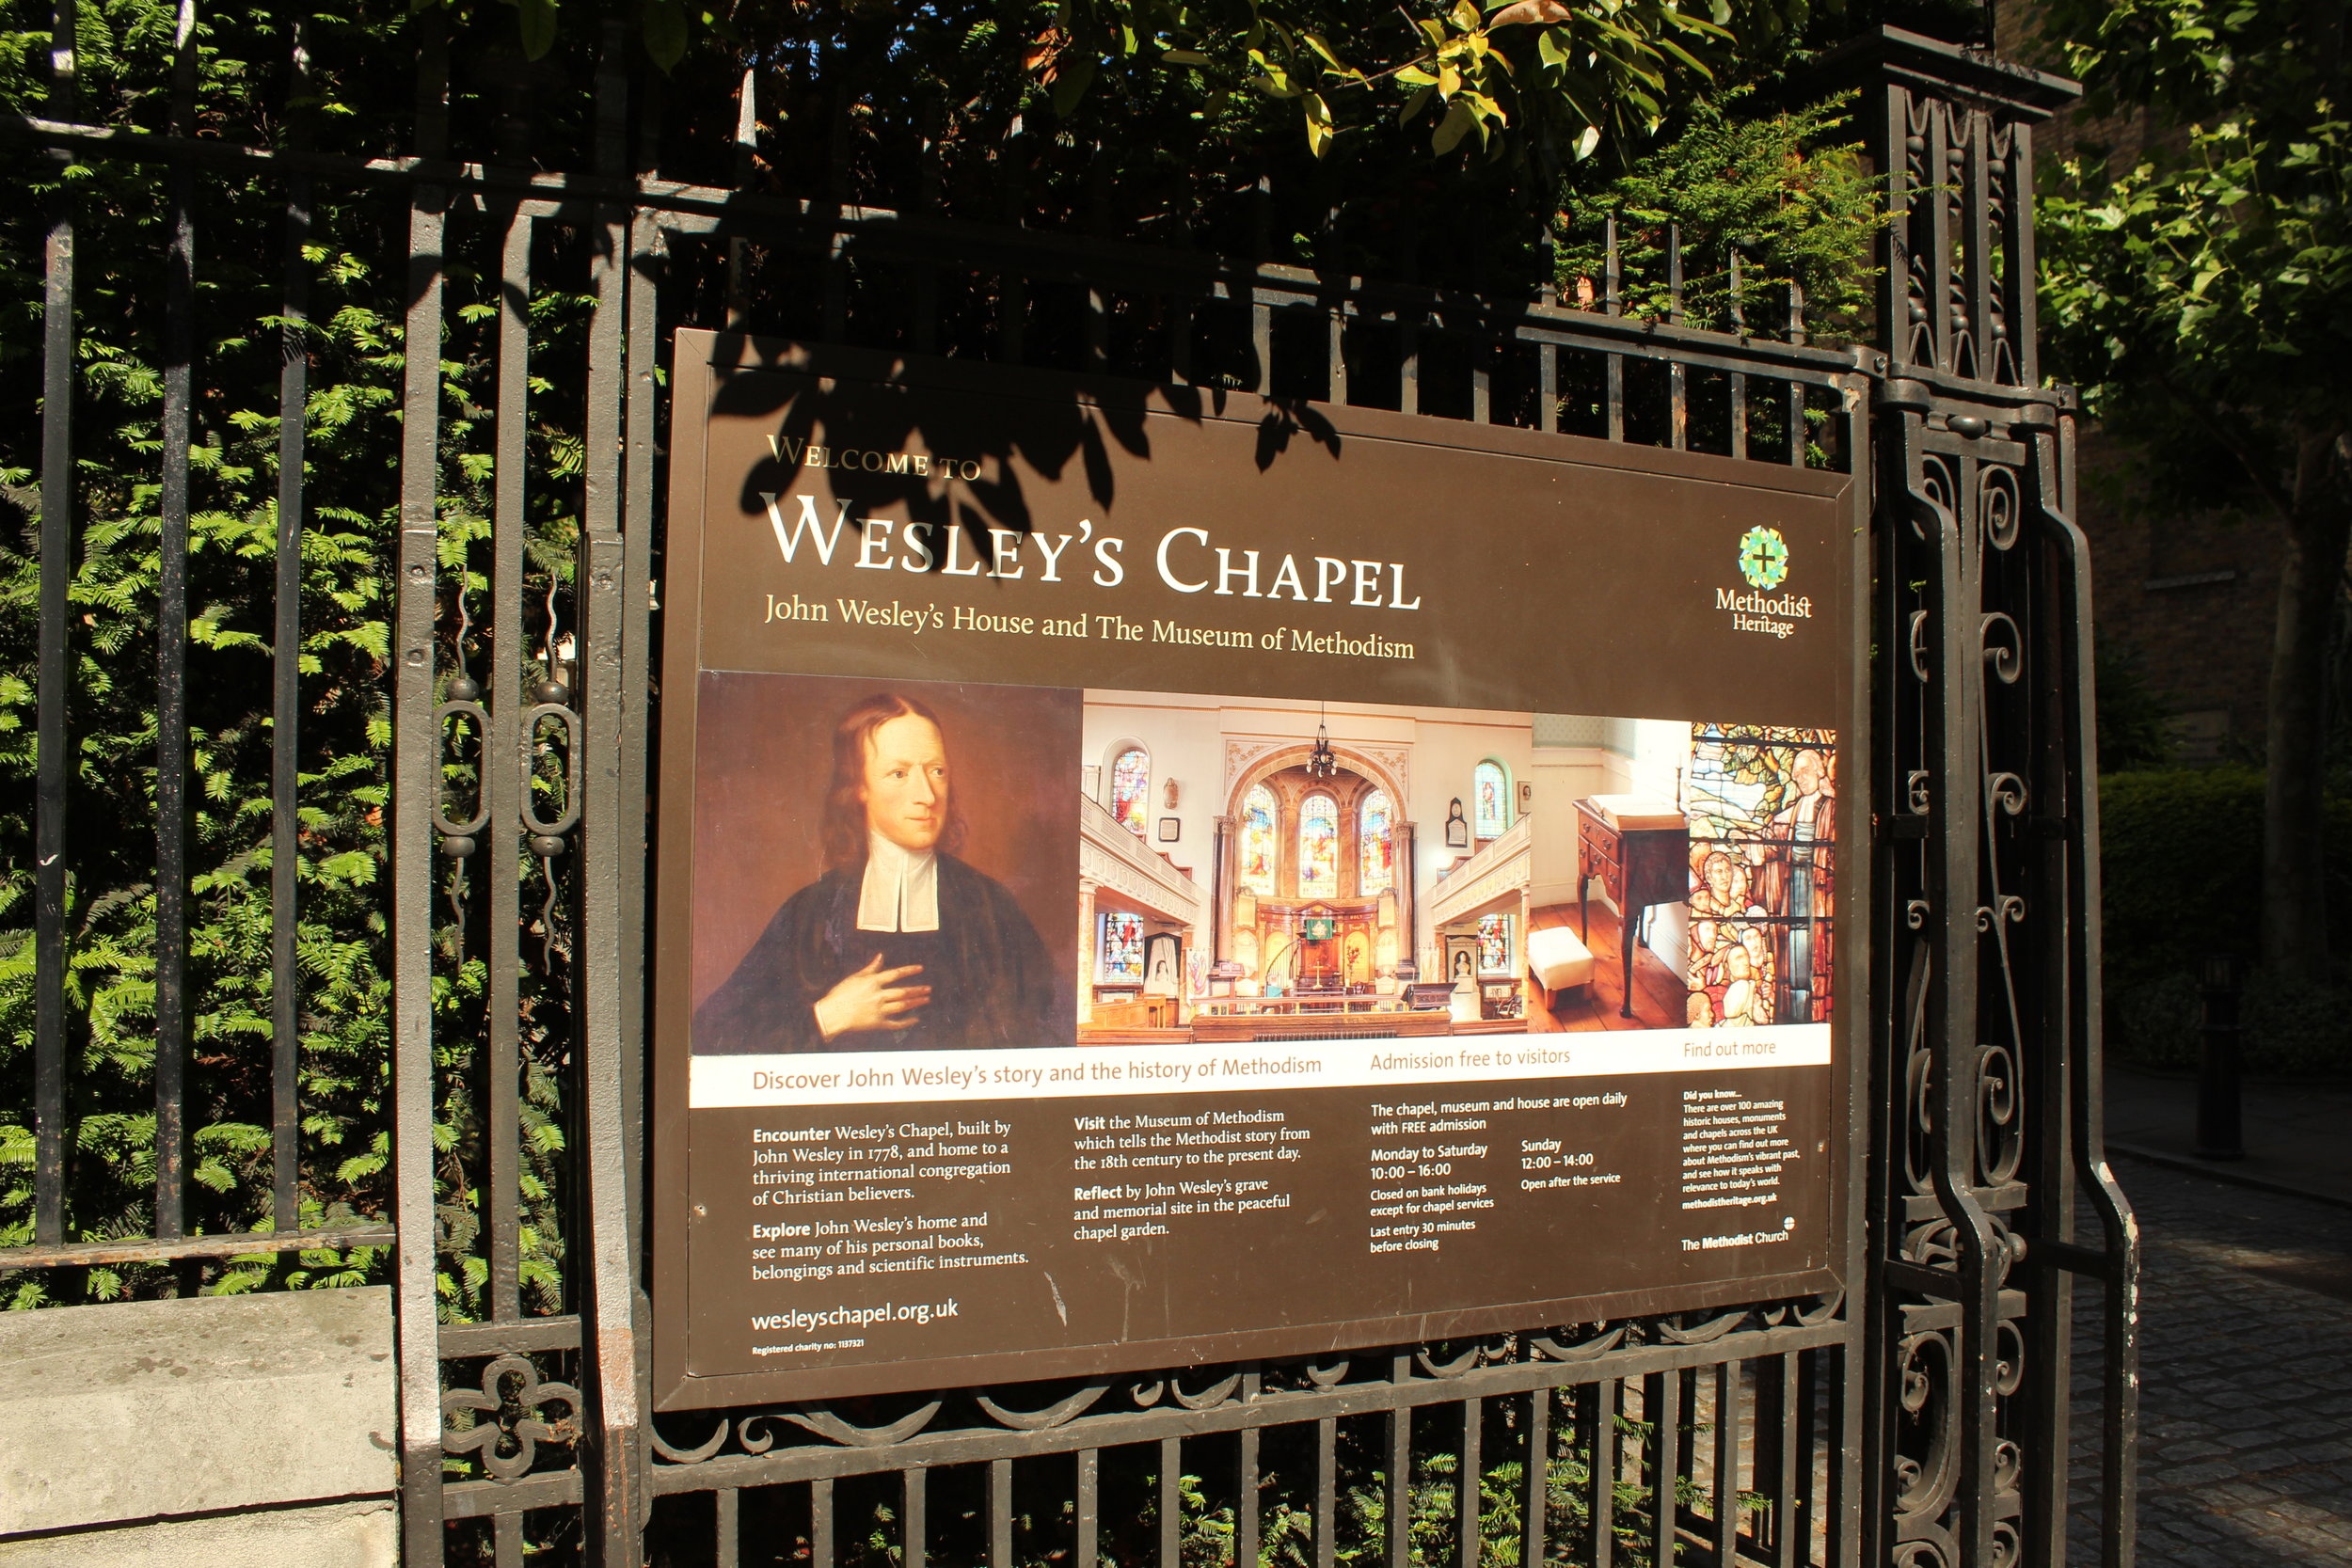 Wesley's Chapel: John Wesley's House and The Museum of Methodism